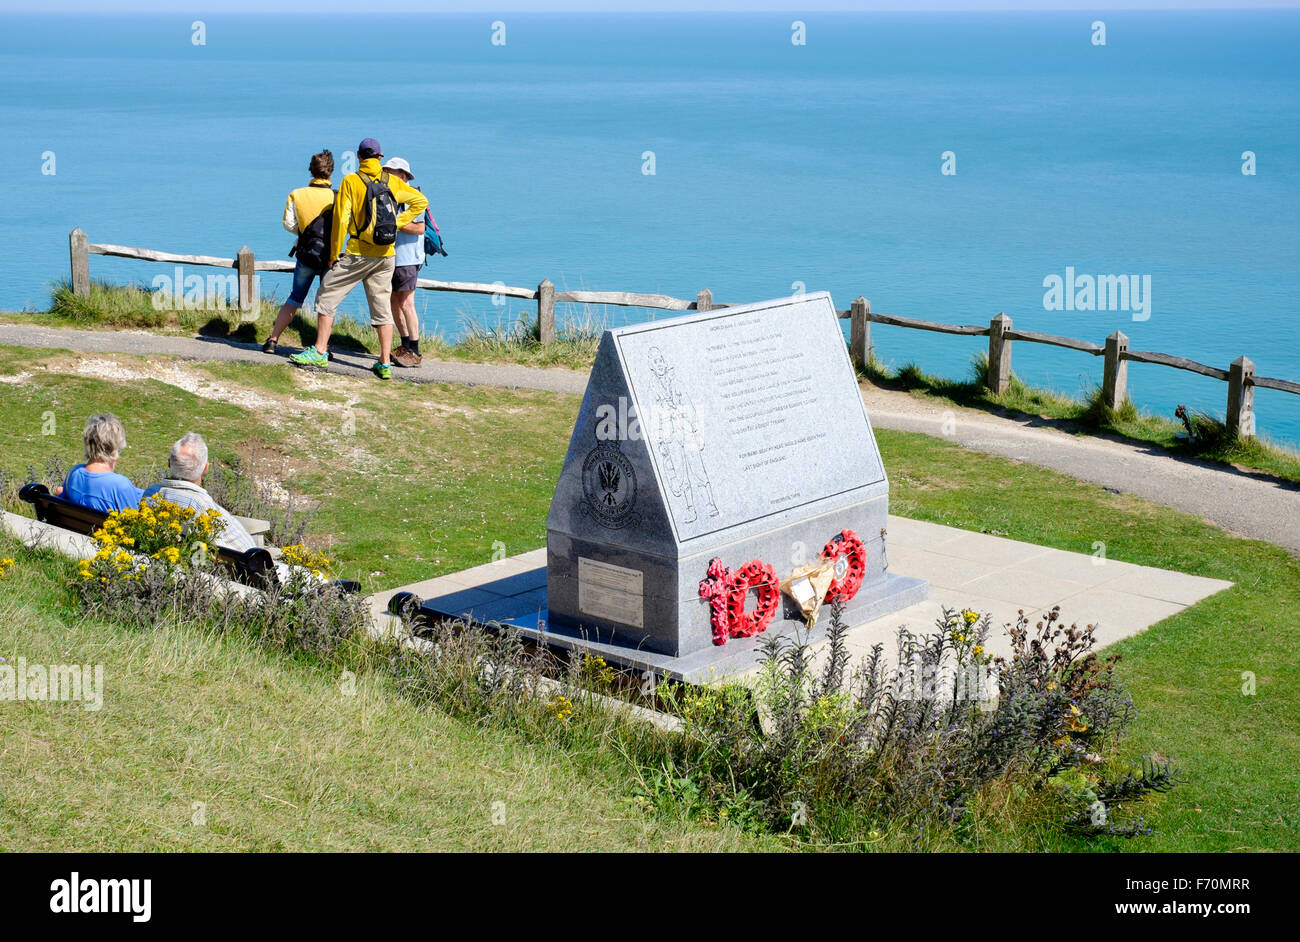 RAF WW2 memorial to the crews lost in Bomber command, Beachy Head, East Sussex - Stock Image